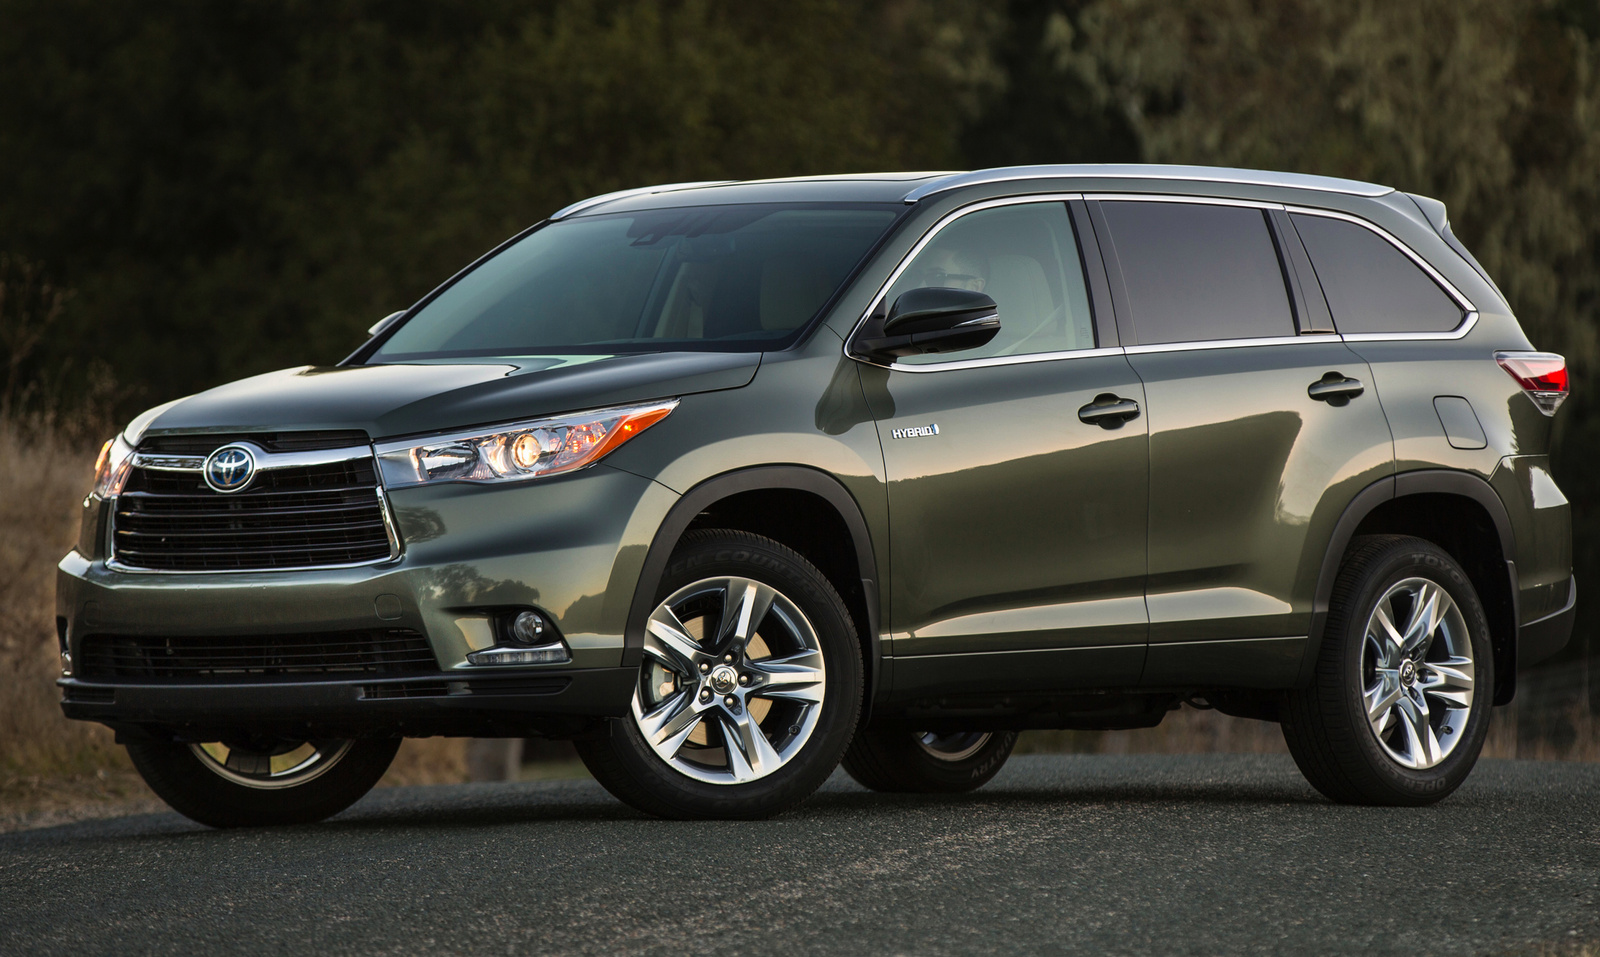 Home / Research / Toyota / Highlander Hybrid / 2014